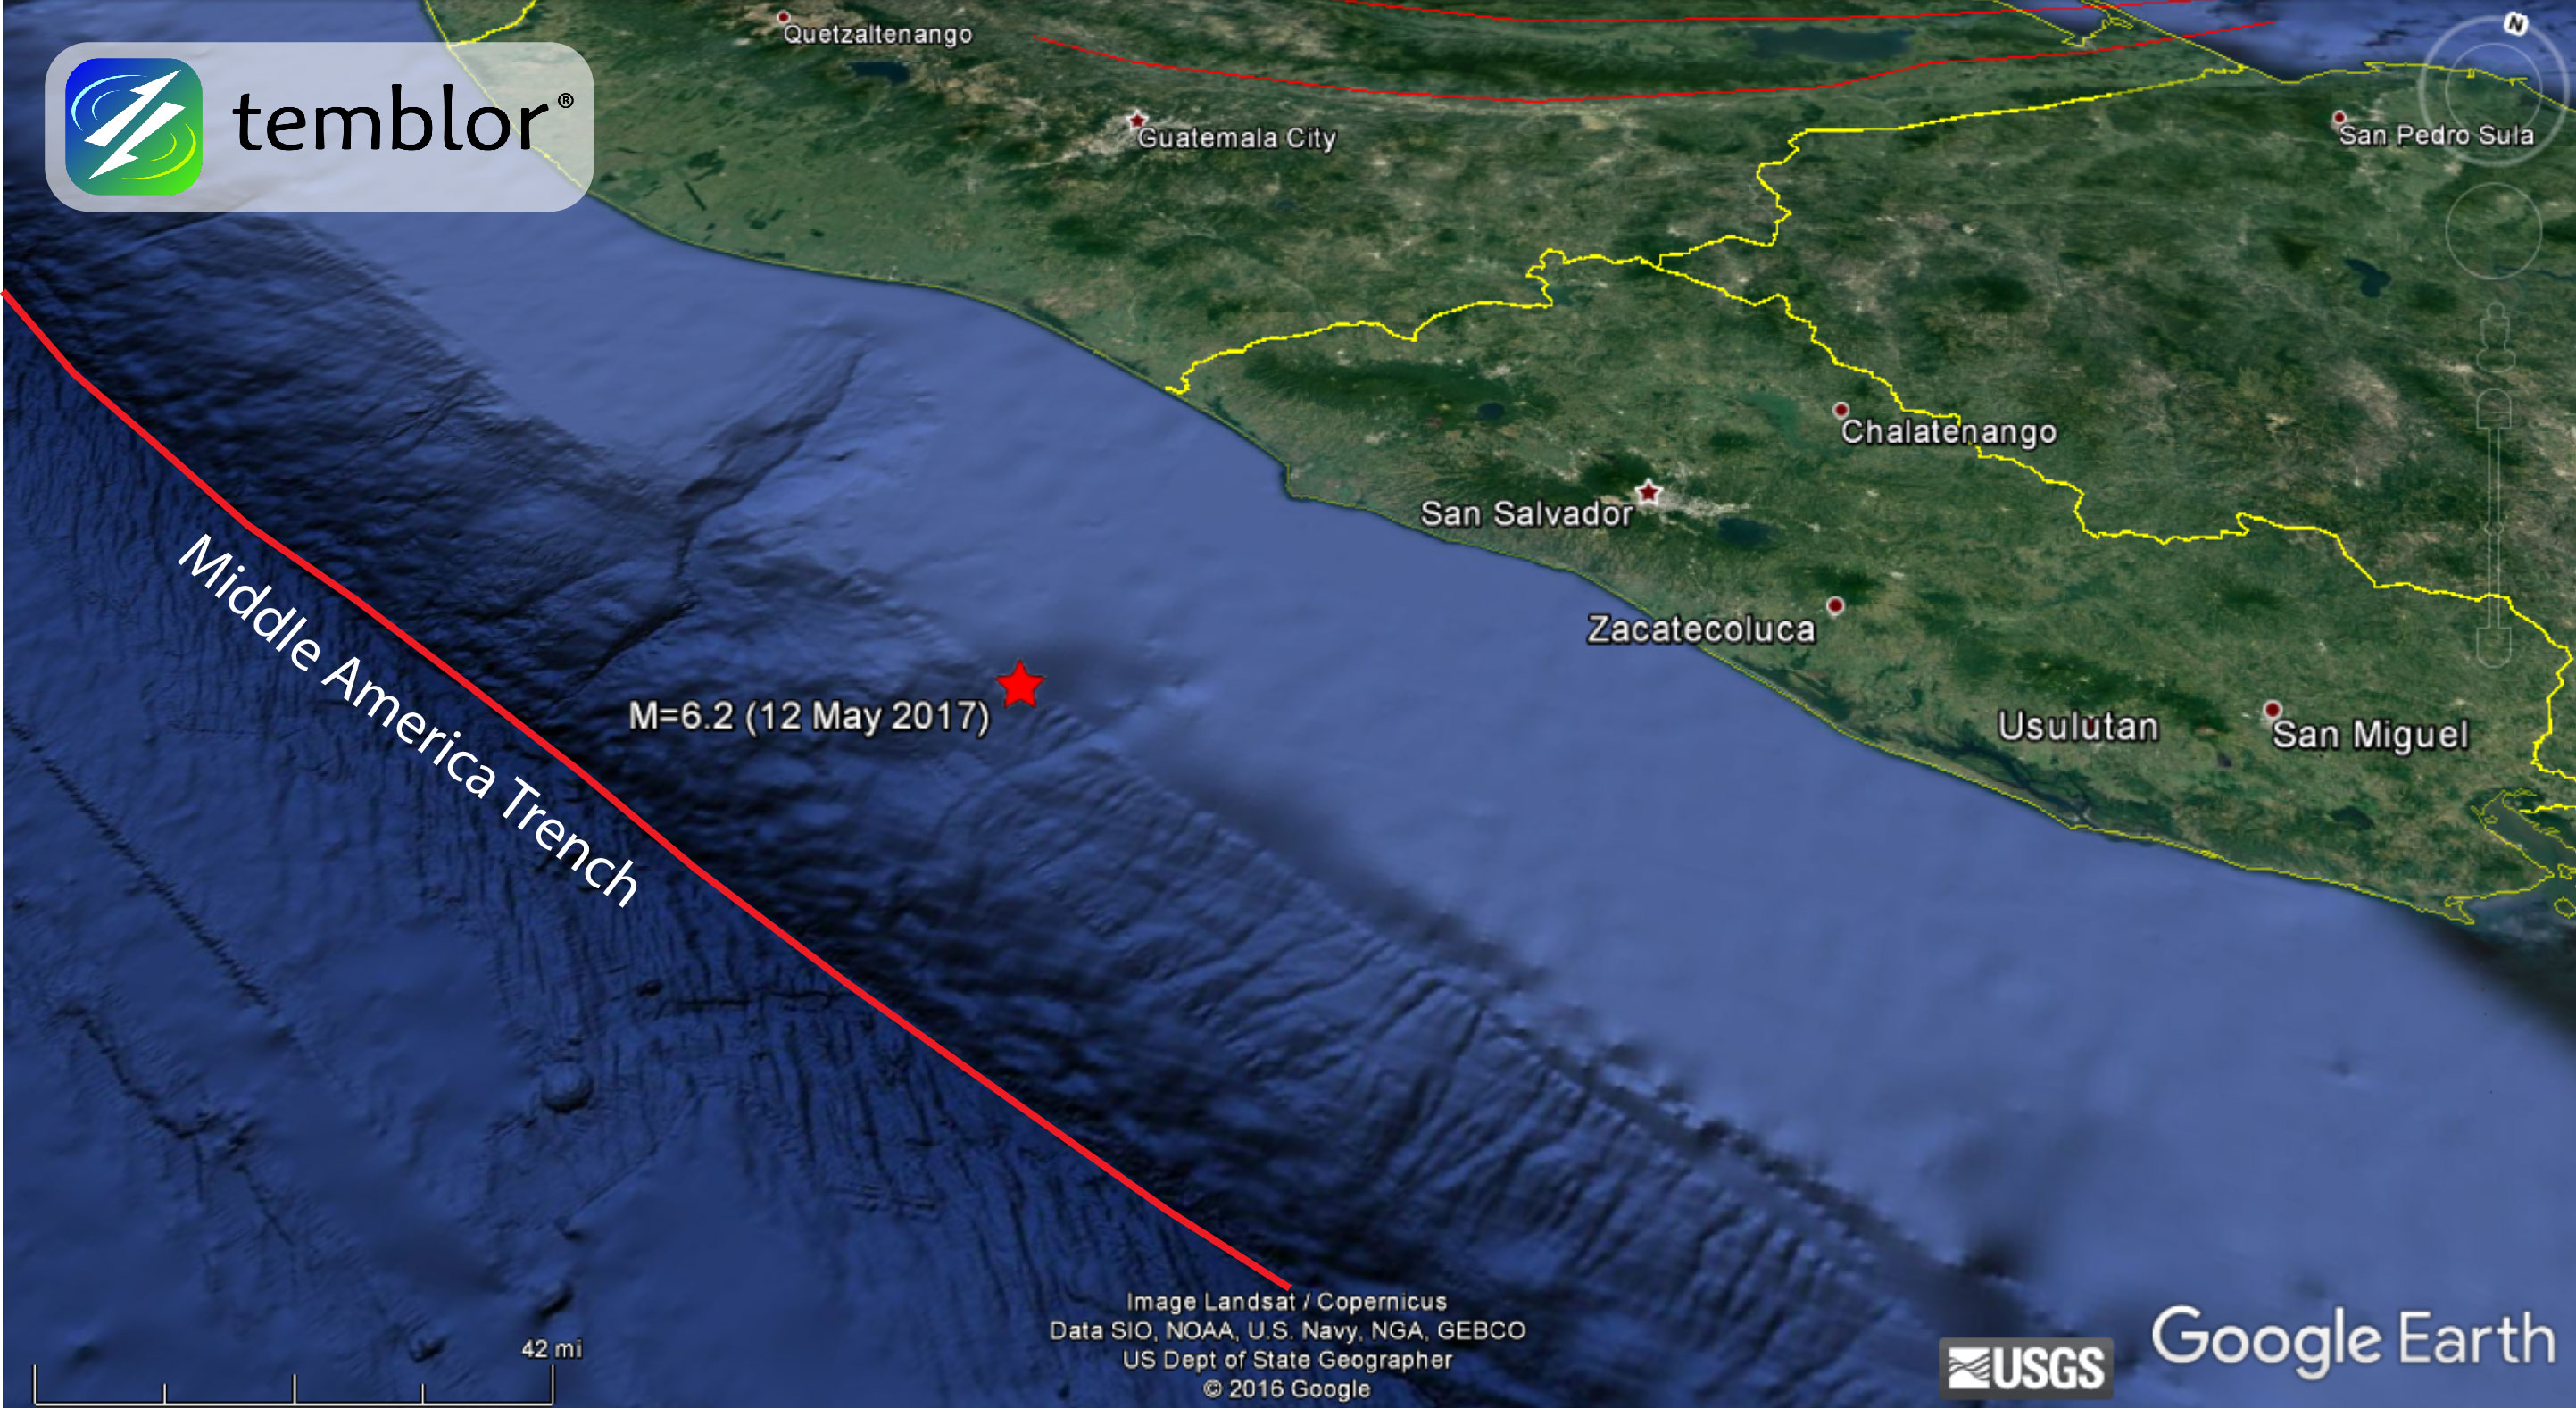 M62 subduction zone earthquake strikes El Salvador